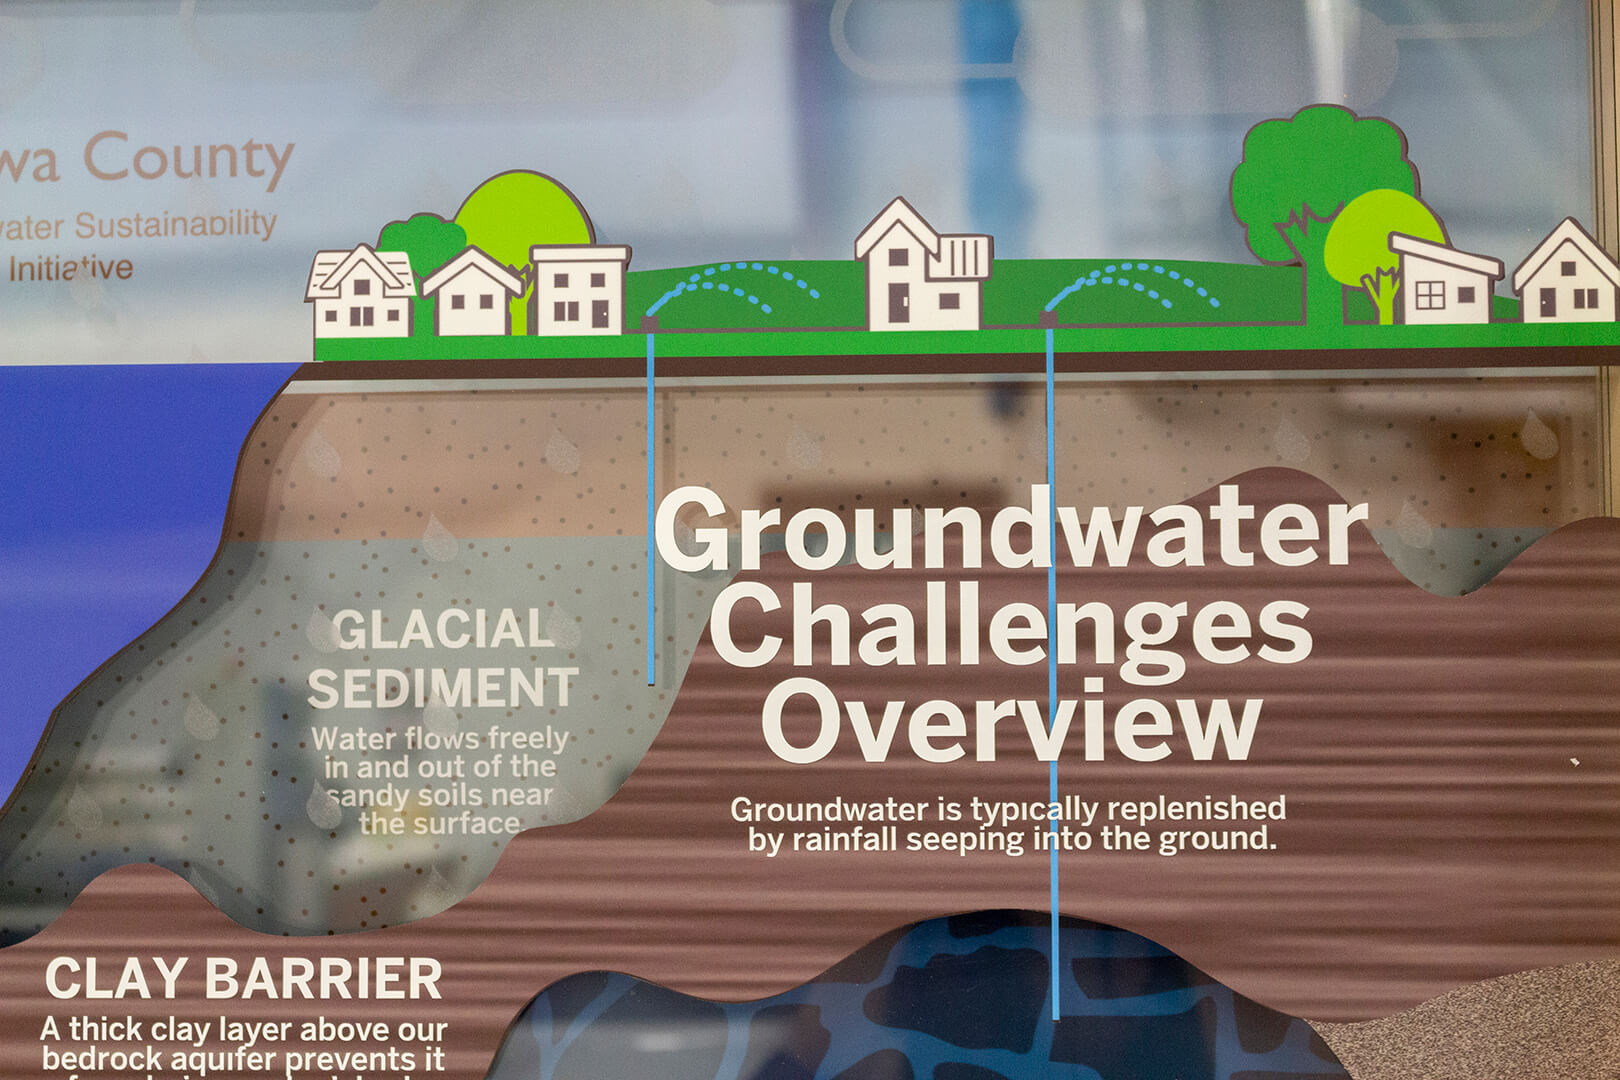 Closeup of the graphics on the groundwater challenges display